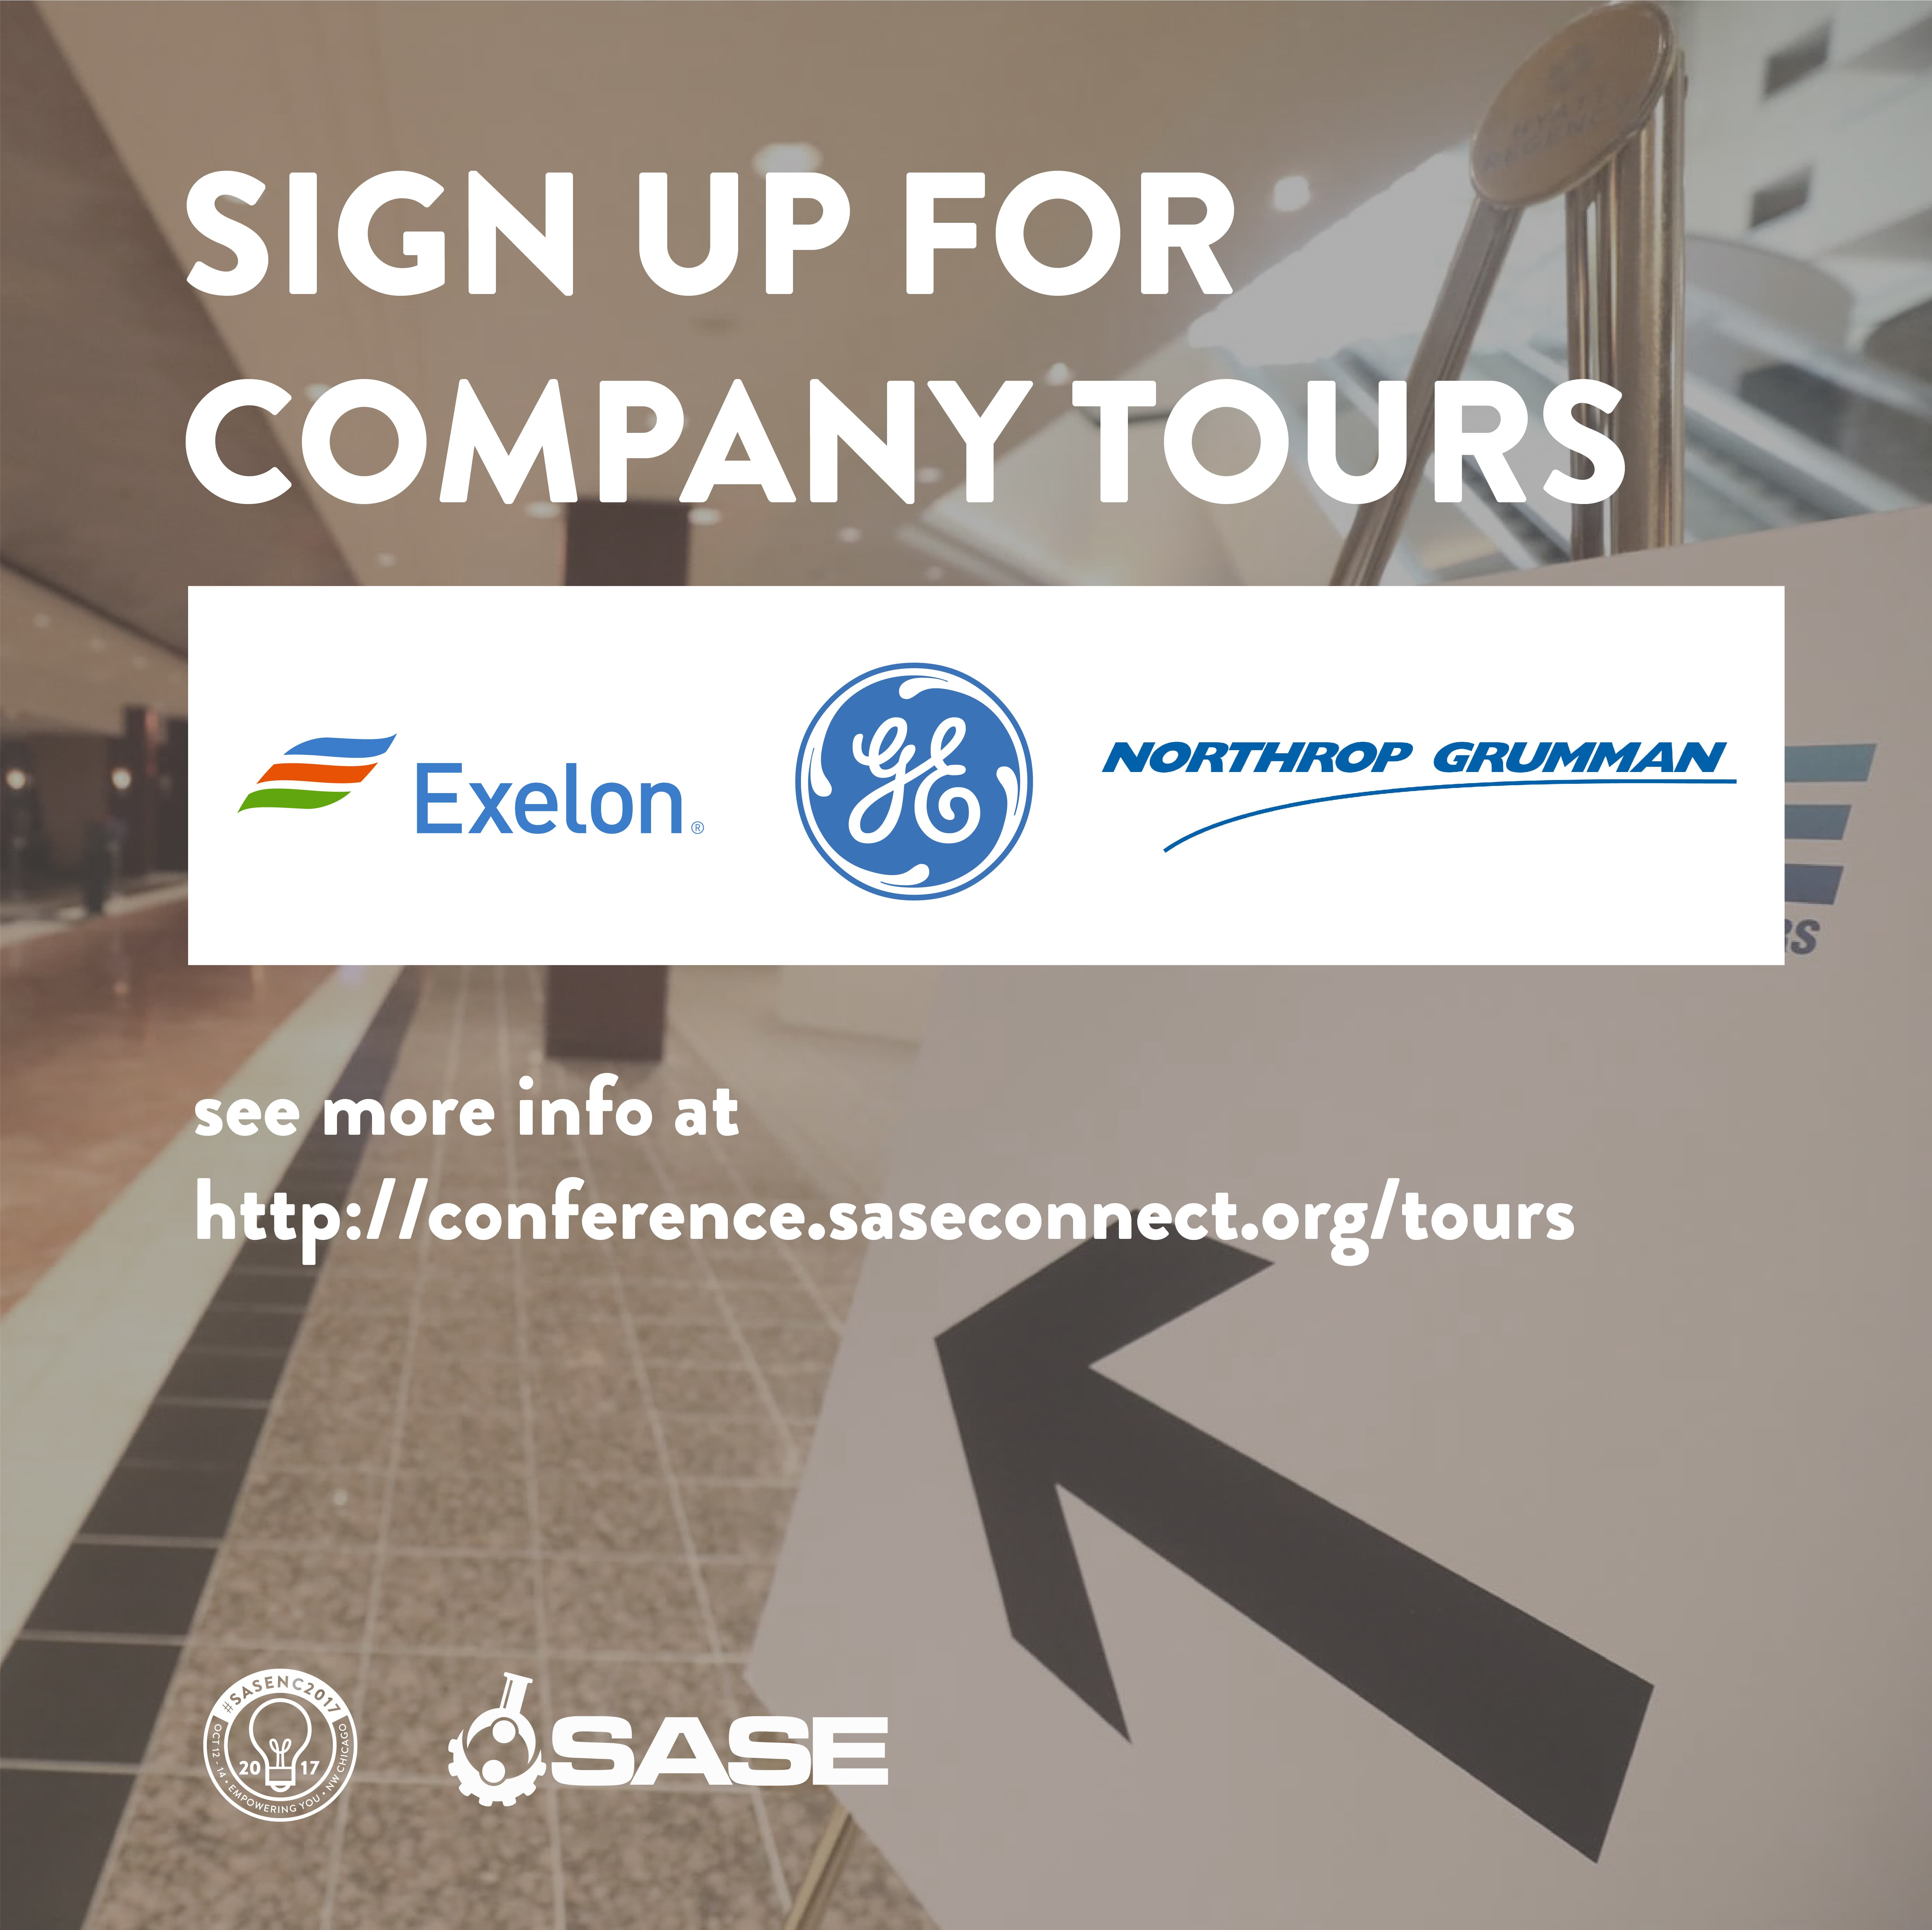 SASENC2017-Company-Tour-Promotional-Graphic